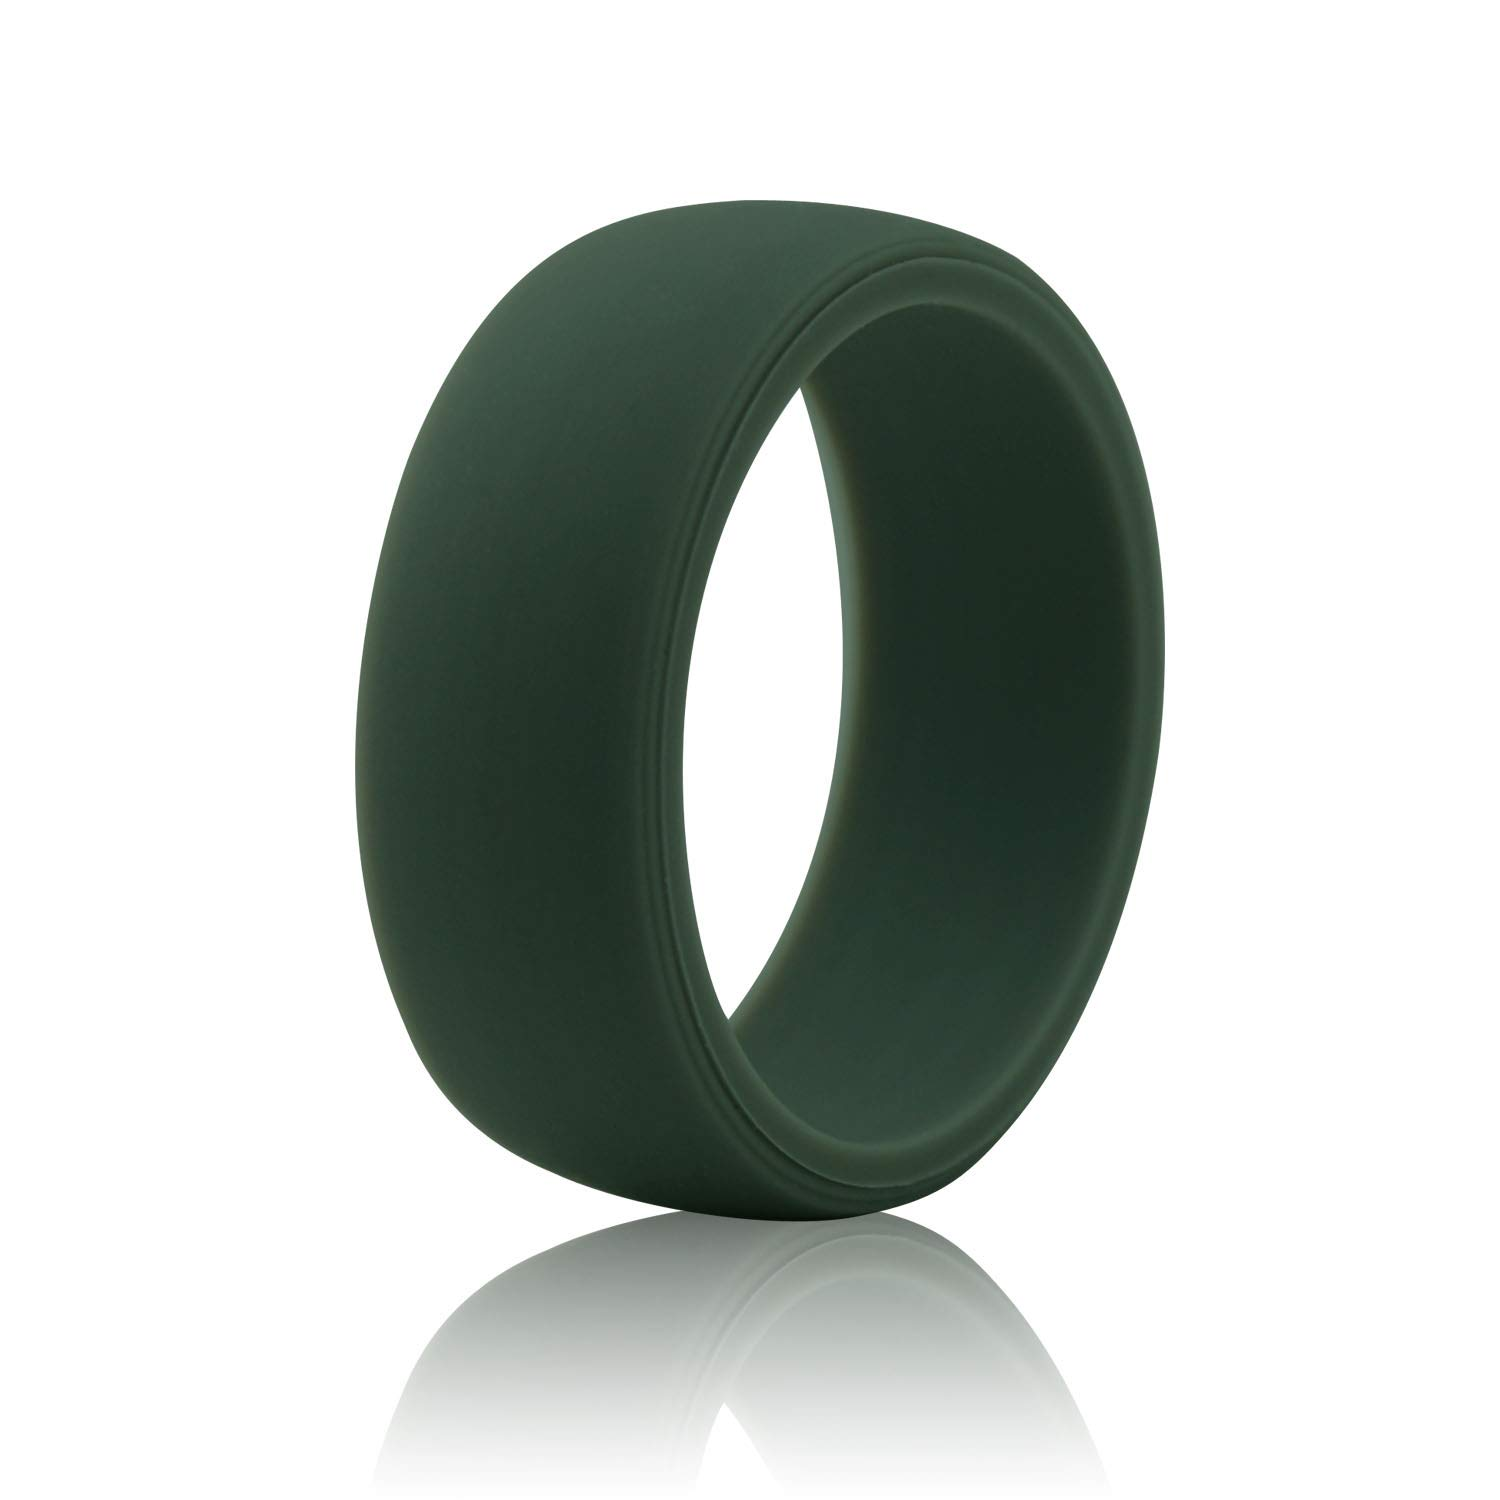 Tuhaoge Silicone Wedding Ring for Men, Singles Silicone Rubber Wedding Bands -Blue,Black,Red Wine and Camo Colors (Green, 10)